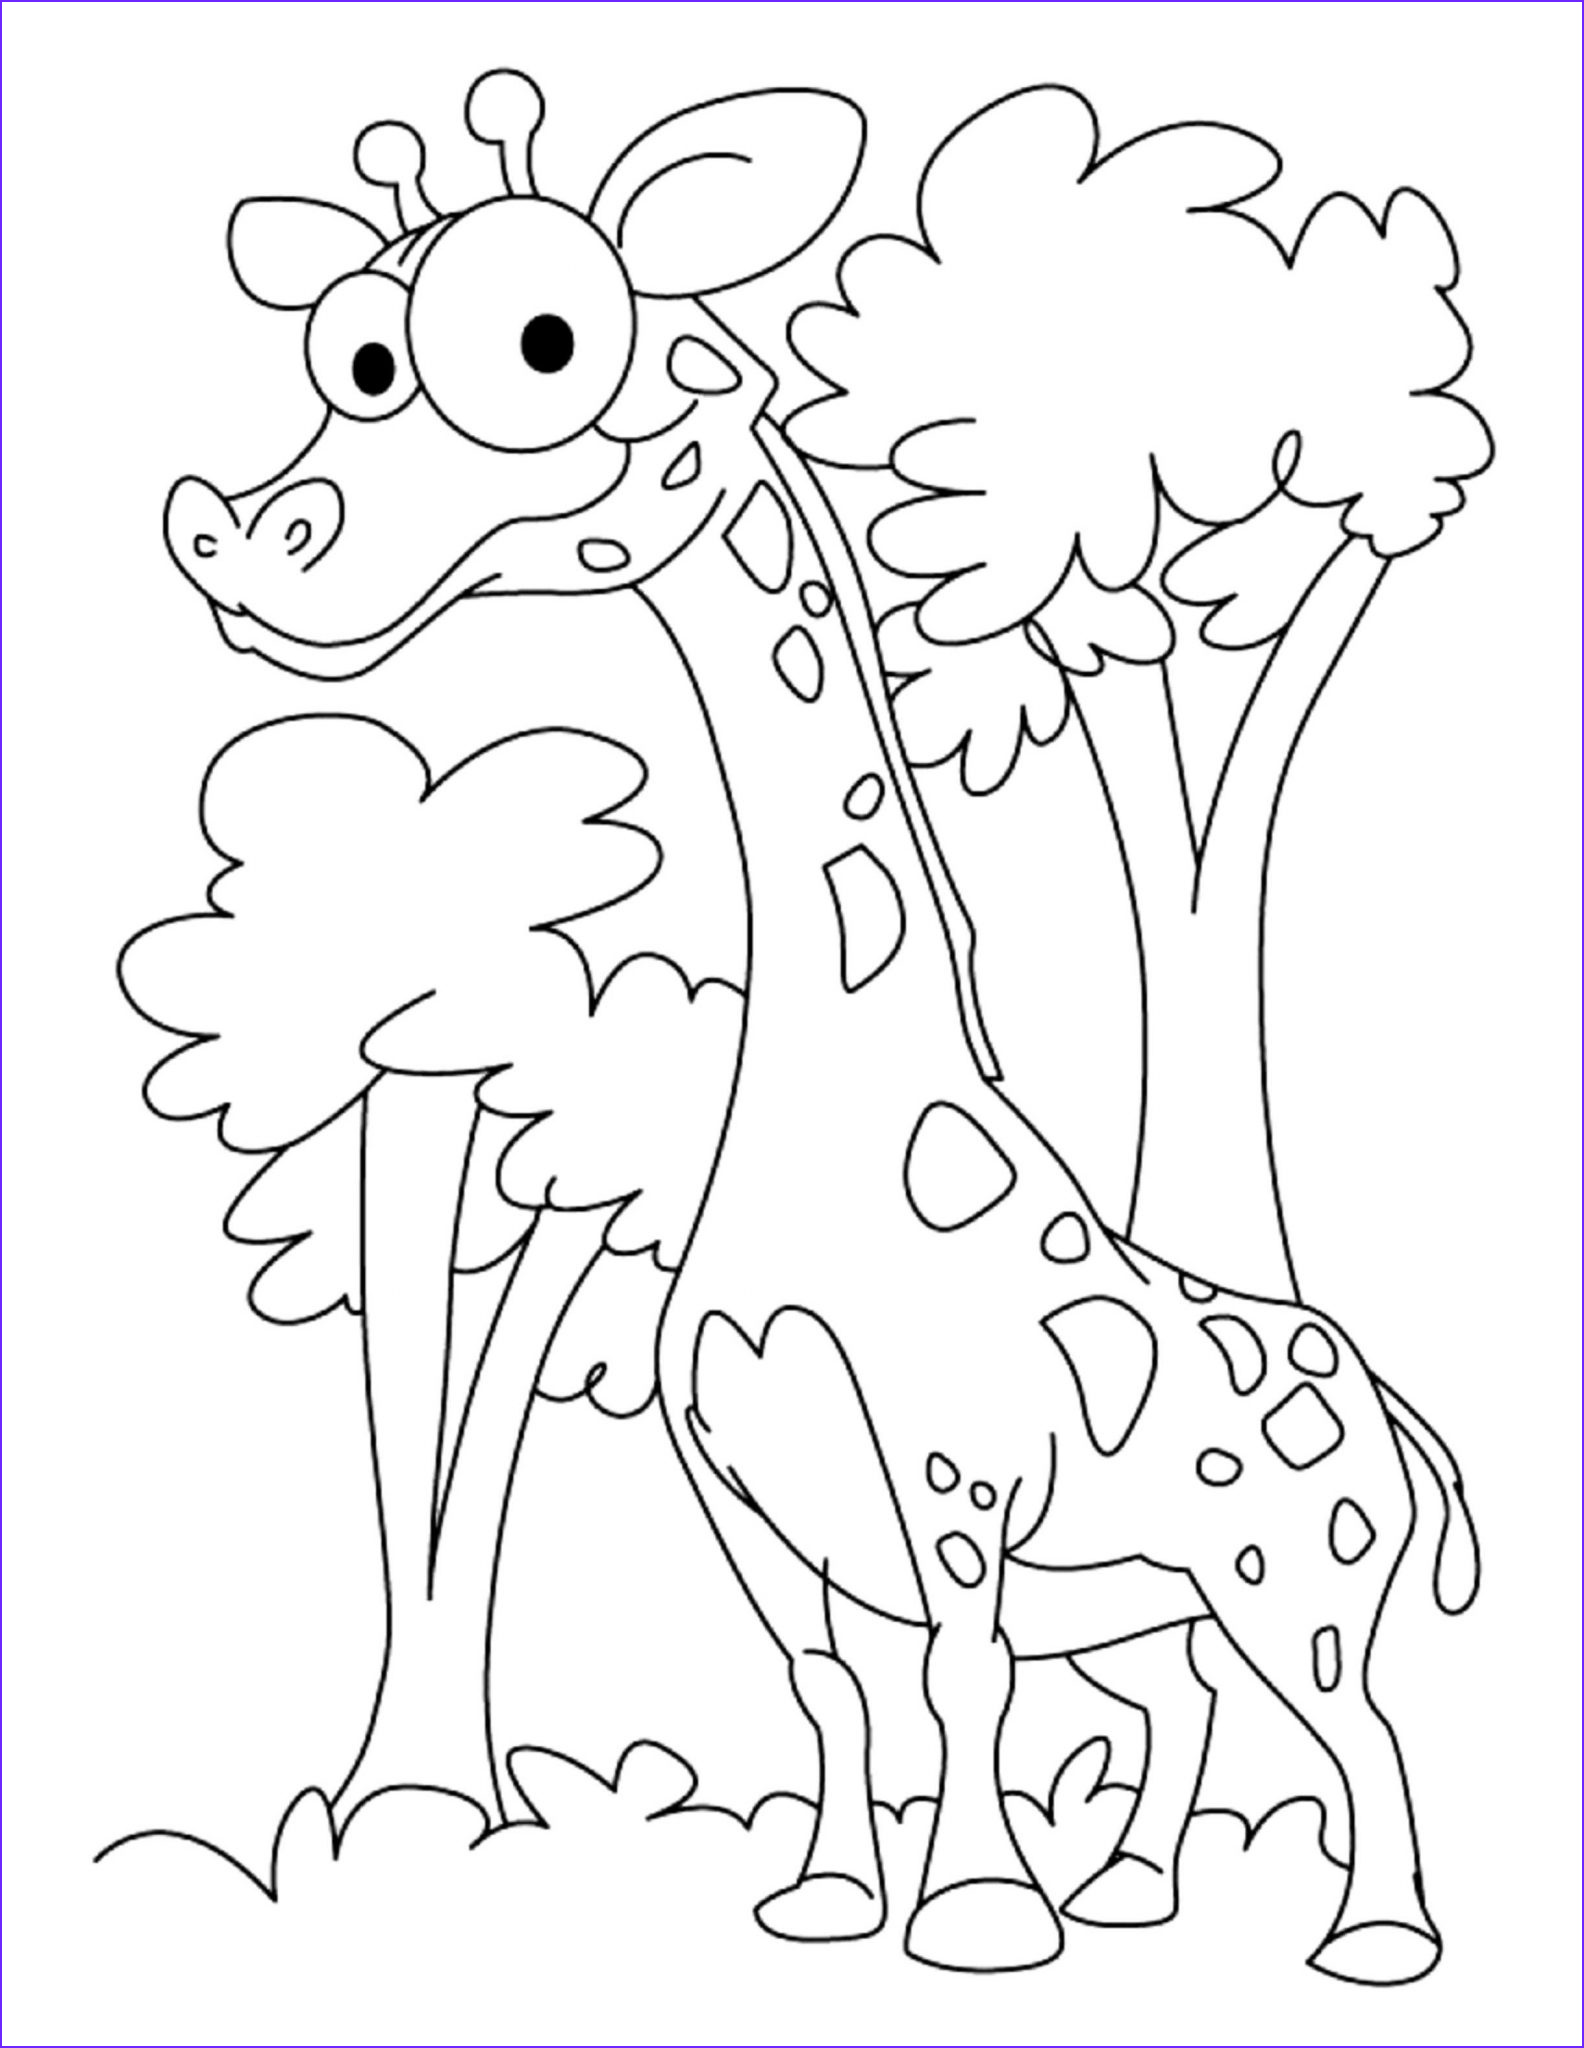 Girraffe Coloring Best Of Photos Print & Download Giraffe Coloring Pages for Kids to Have Fun